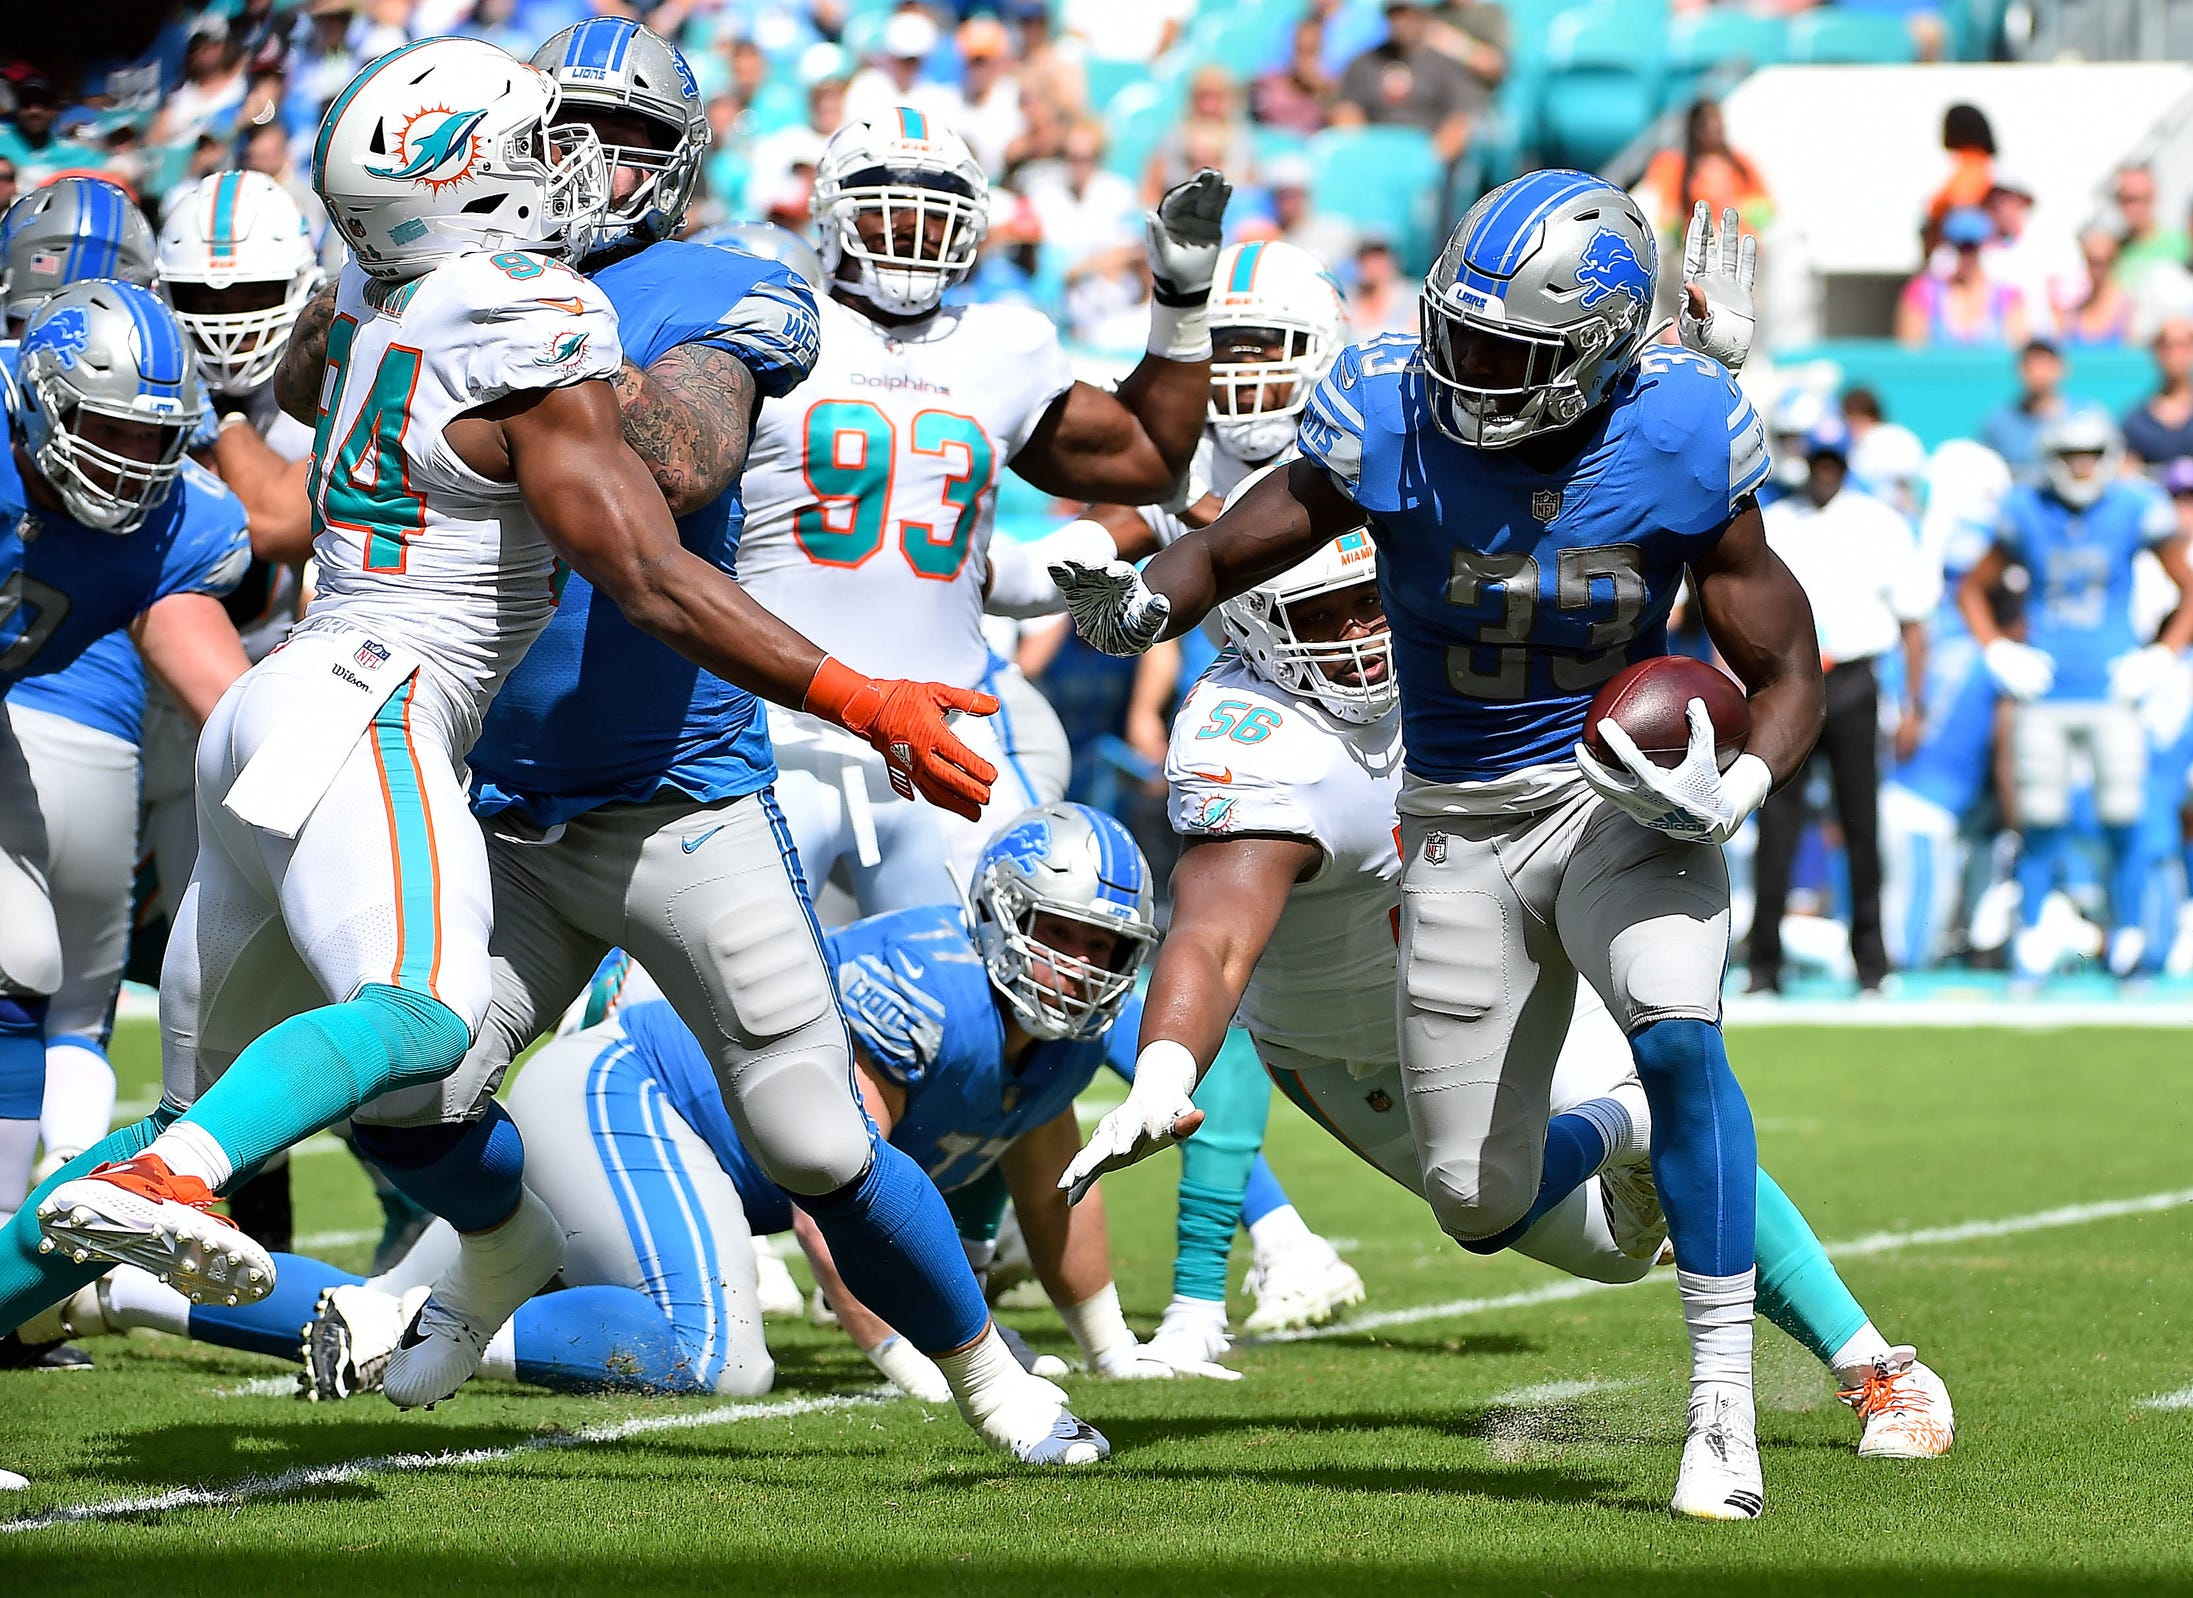 Lions running back Kerryon Johnson runs the ball during the first half on Sunday, Oct. 21, 2018, in Miami Gardens, Fla.